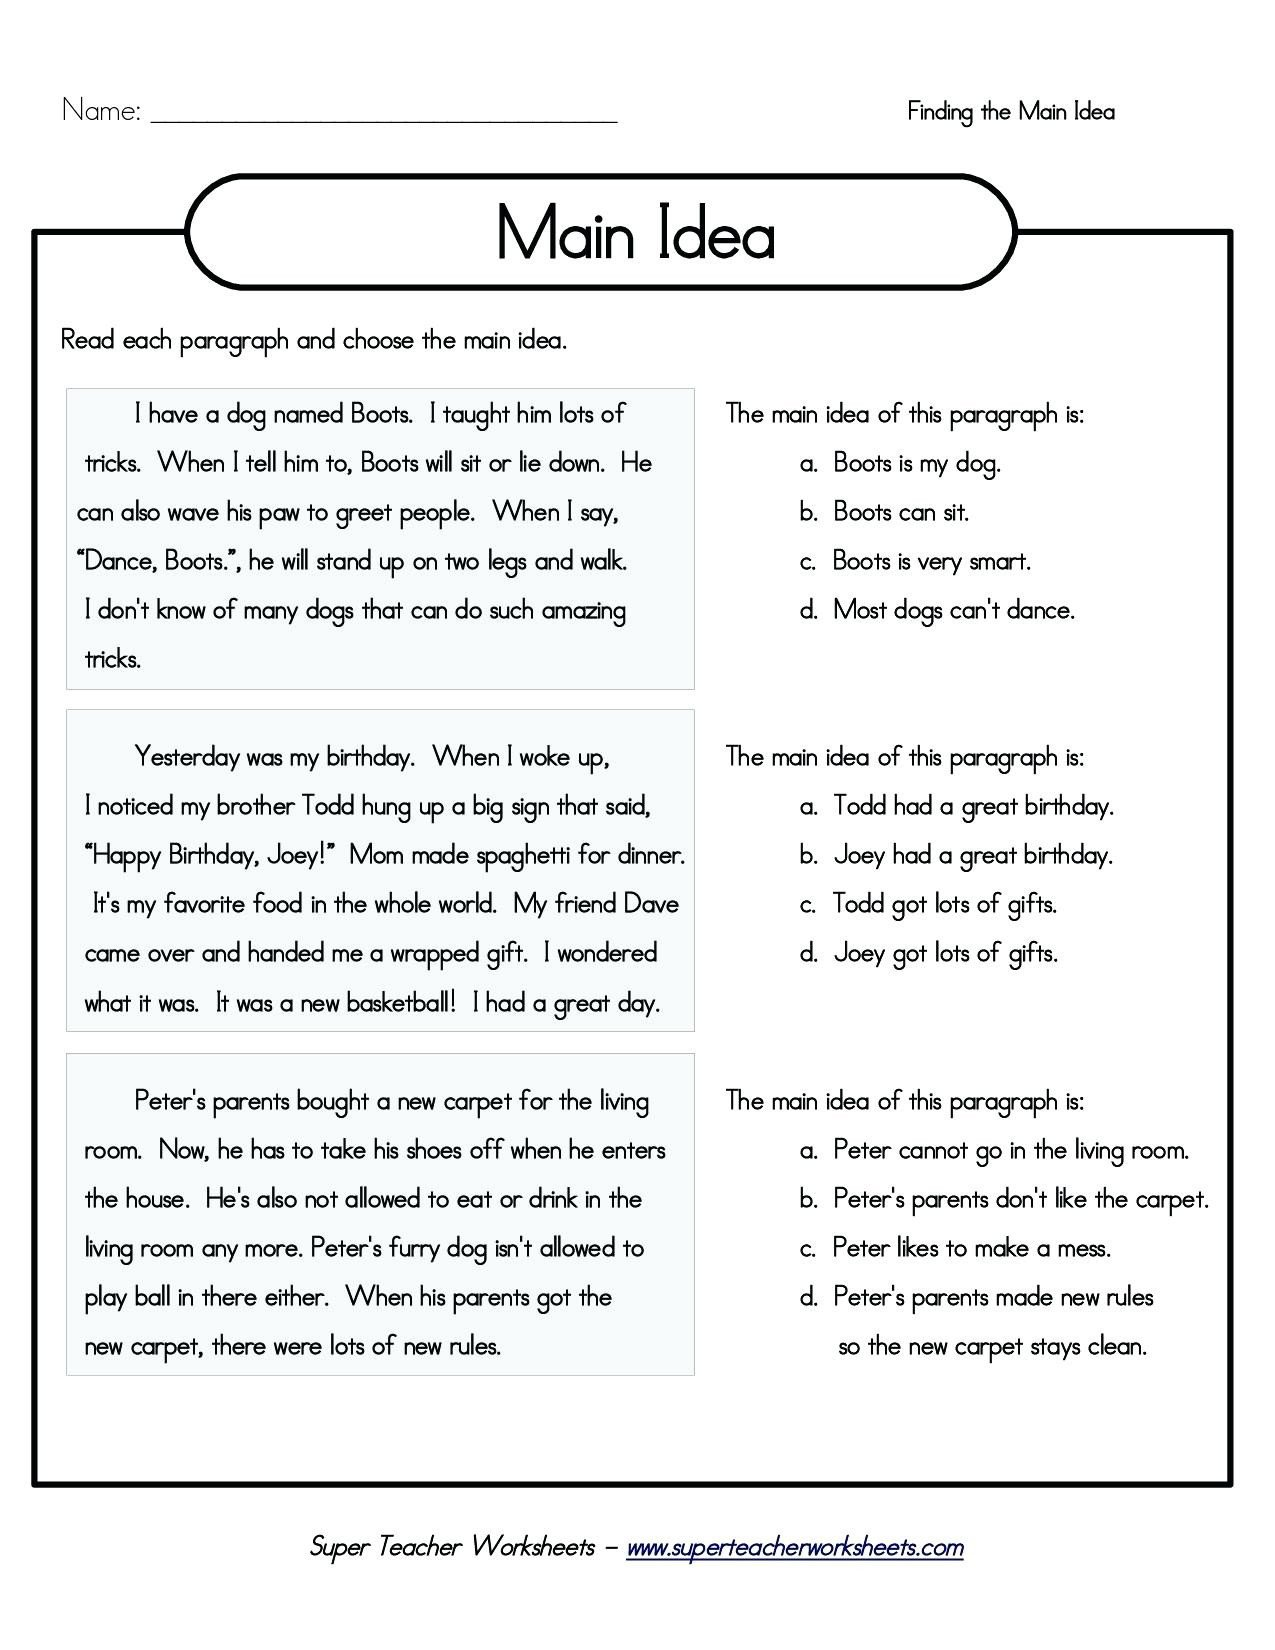 8th Grade Reading Worksheets Coloring Book Fun Activities for Third Graders Grade